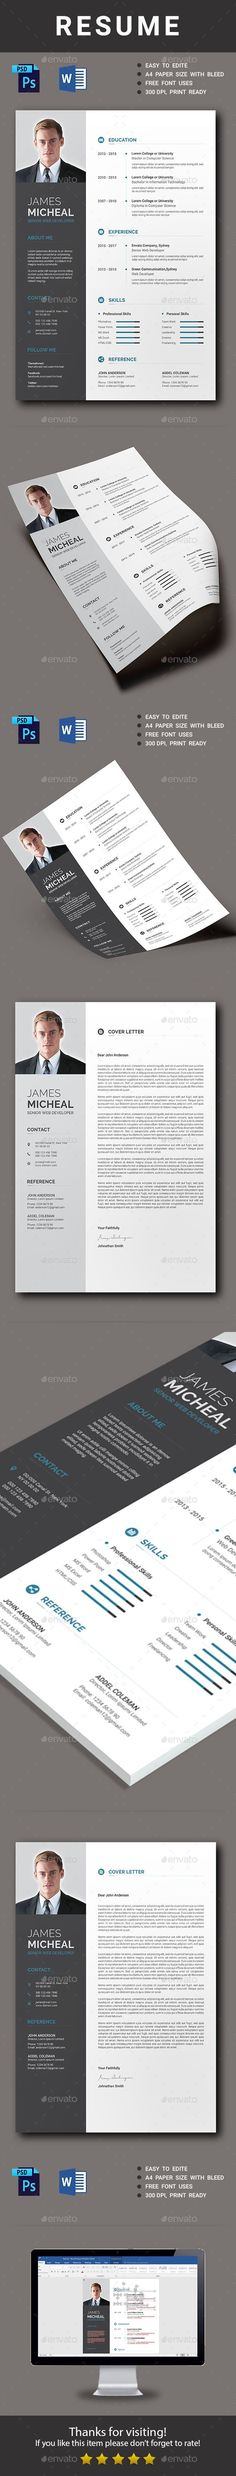 #Resume - Resumes Stationery Download here: https://graphicriver.net/item/resume/20040482?ref=alena994